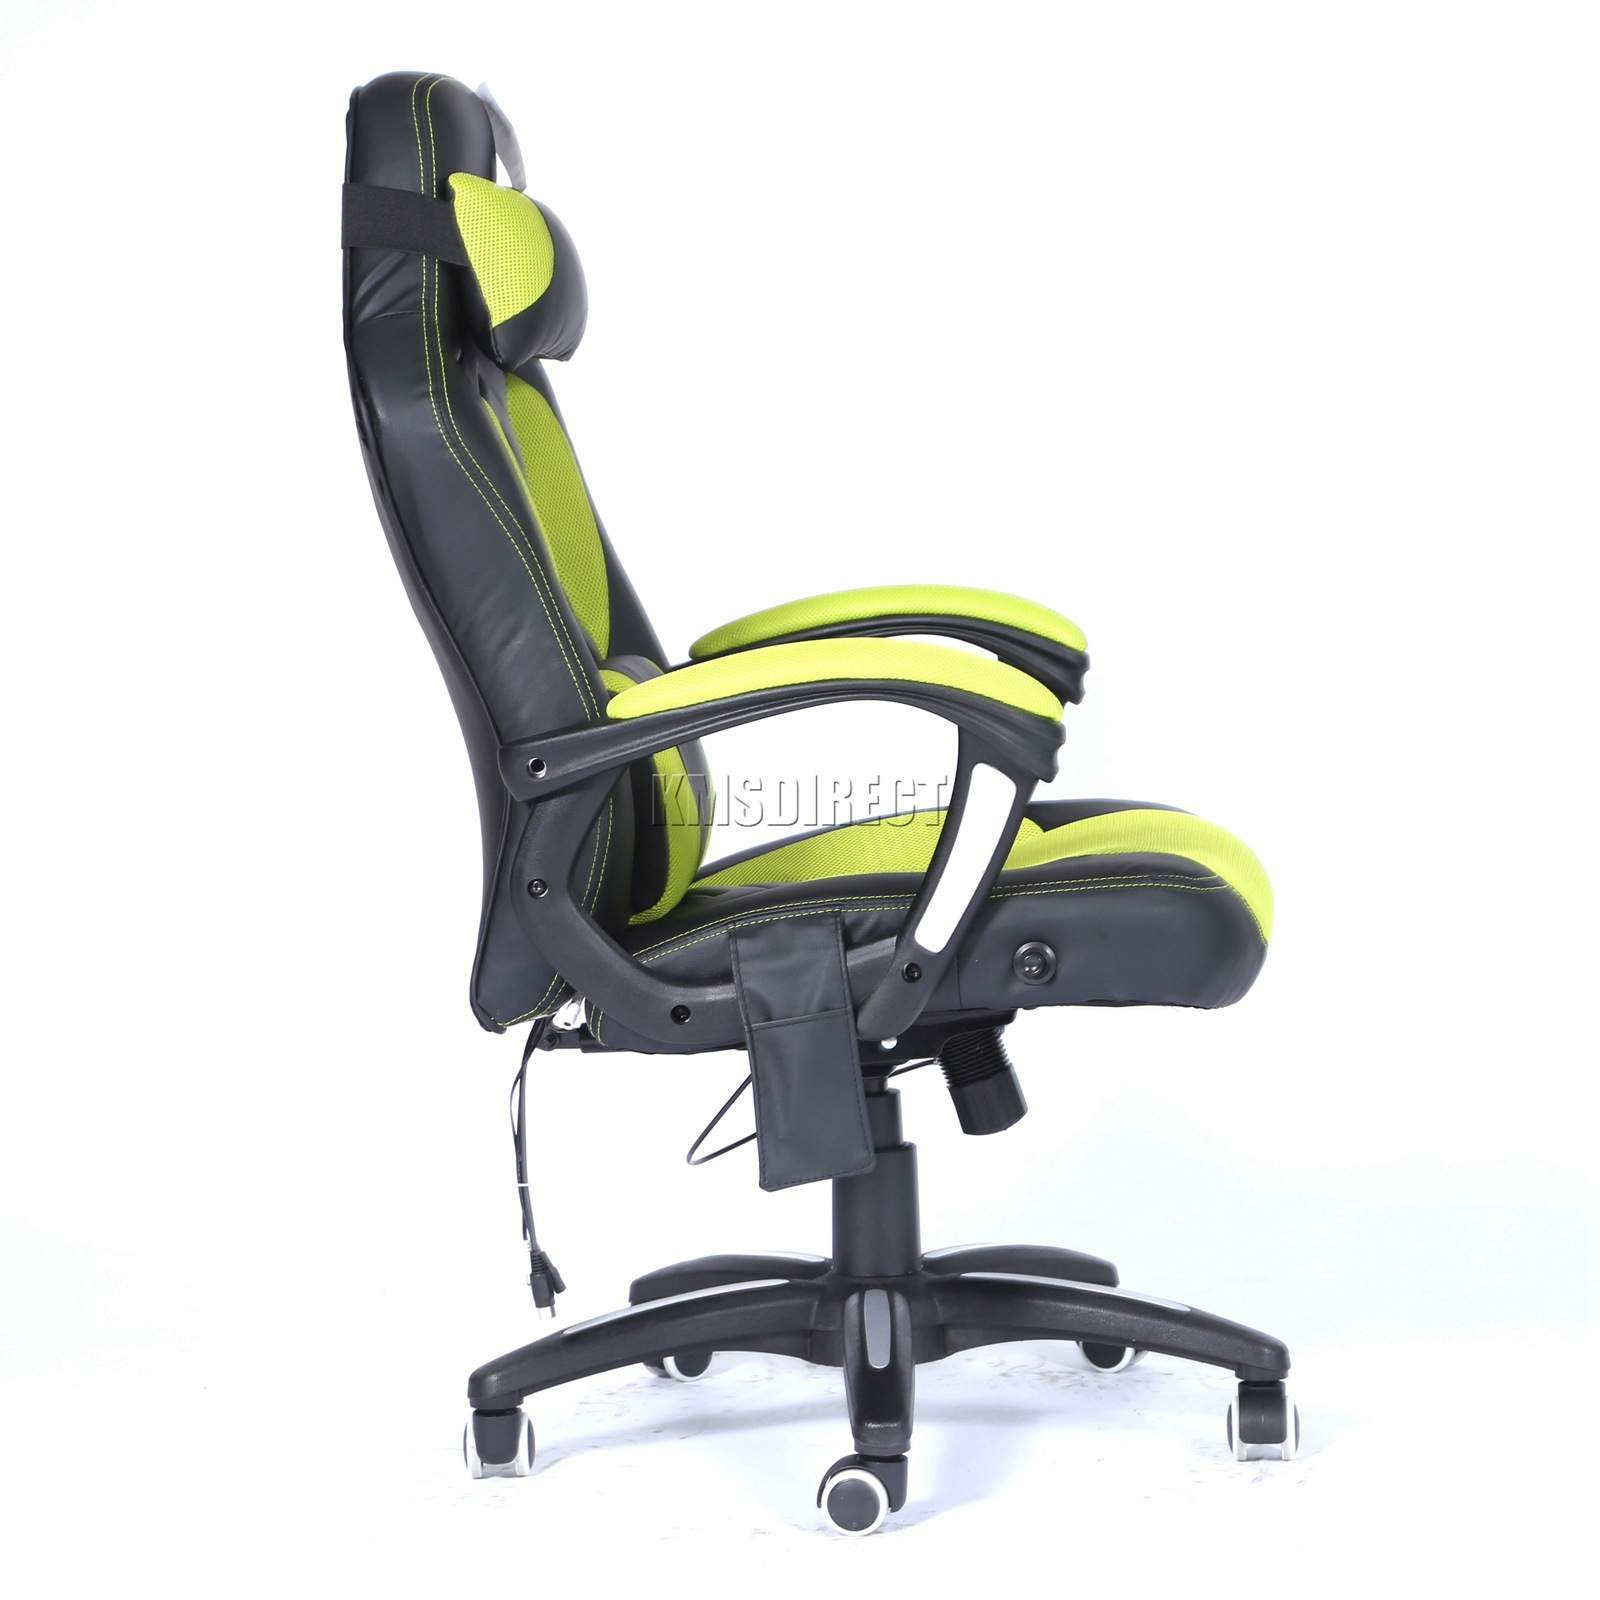 WestWood-Heated-Massage-Office-Chair-Gaming-amp-Computer-Recliner-Swivel-MC09 thumbnail 22